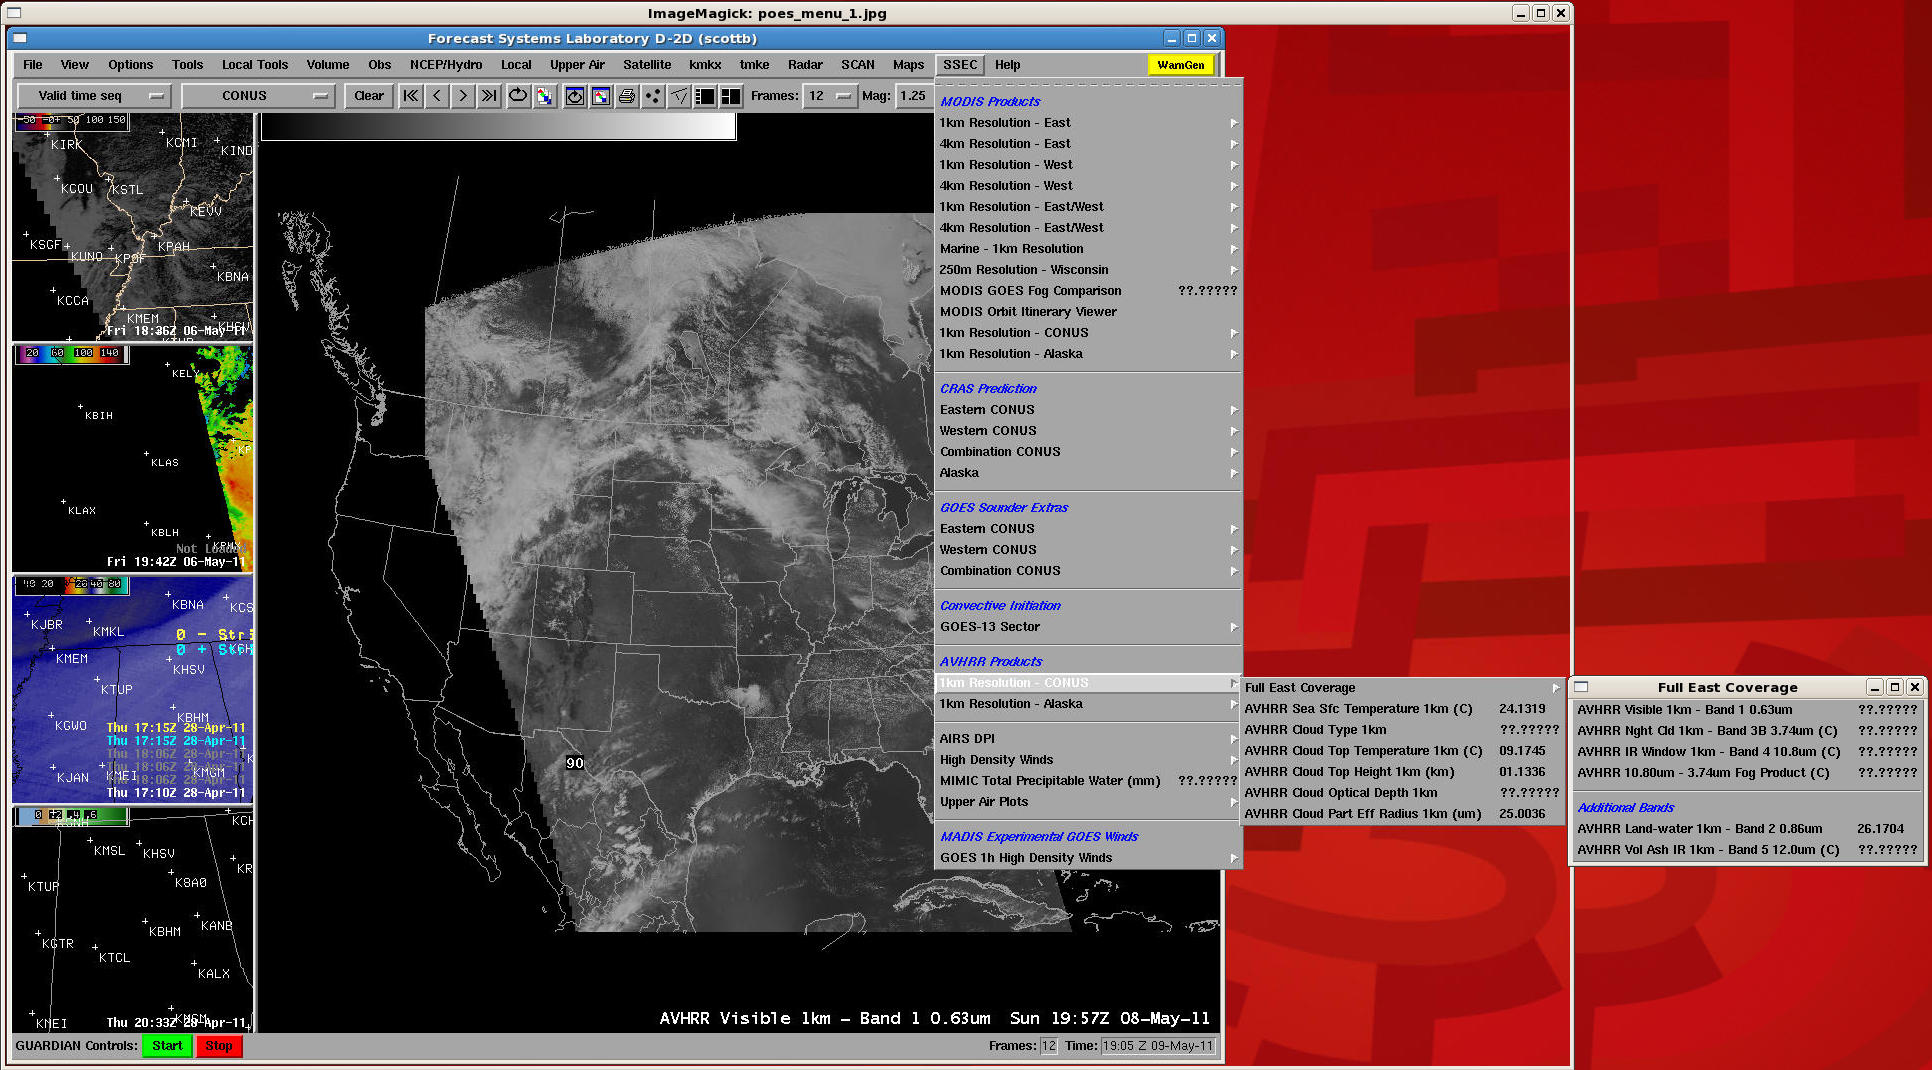 POES AVHRR individual channels in AWIPS menu